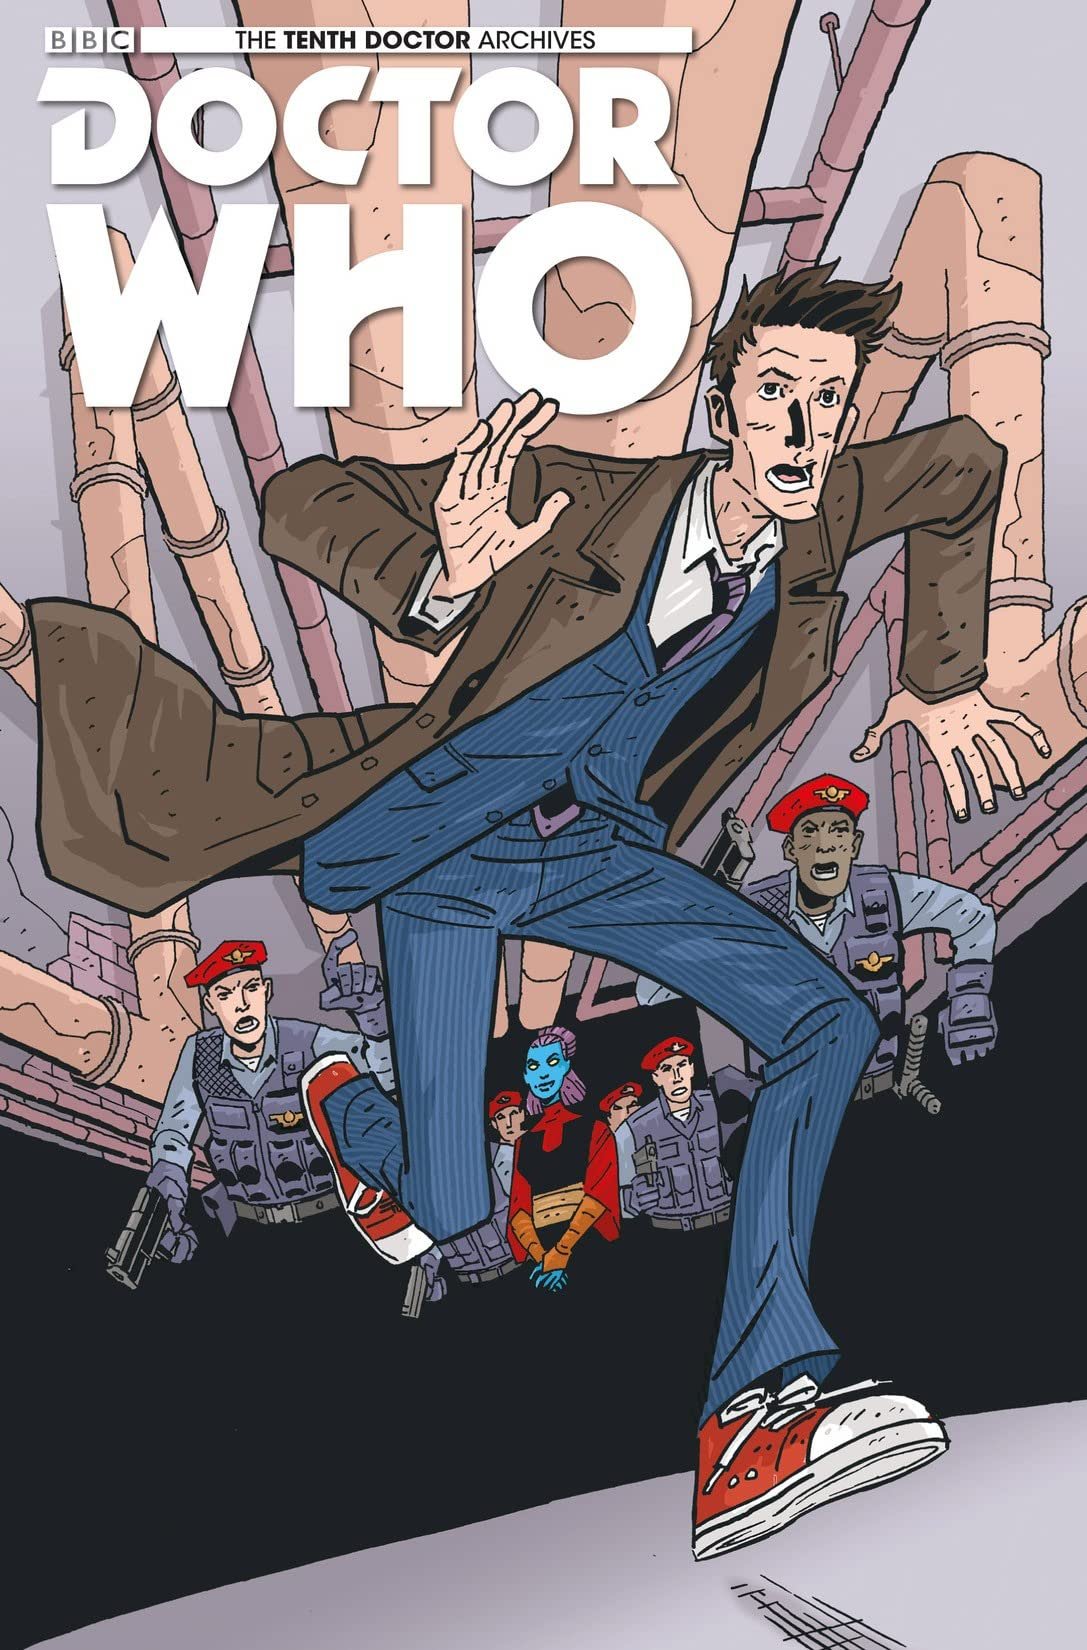 Doctor Who: The Tenth Doctor Archives #30